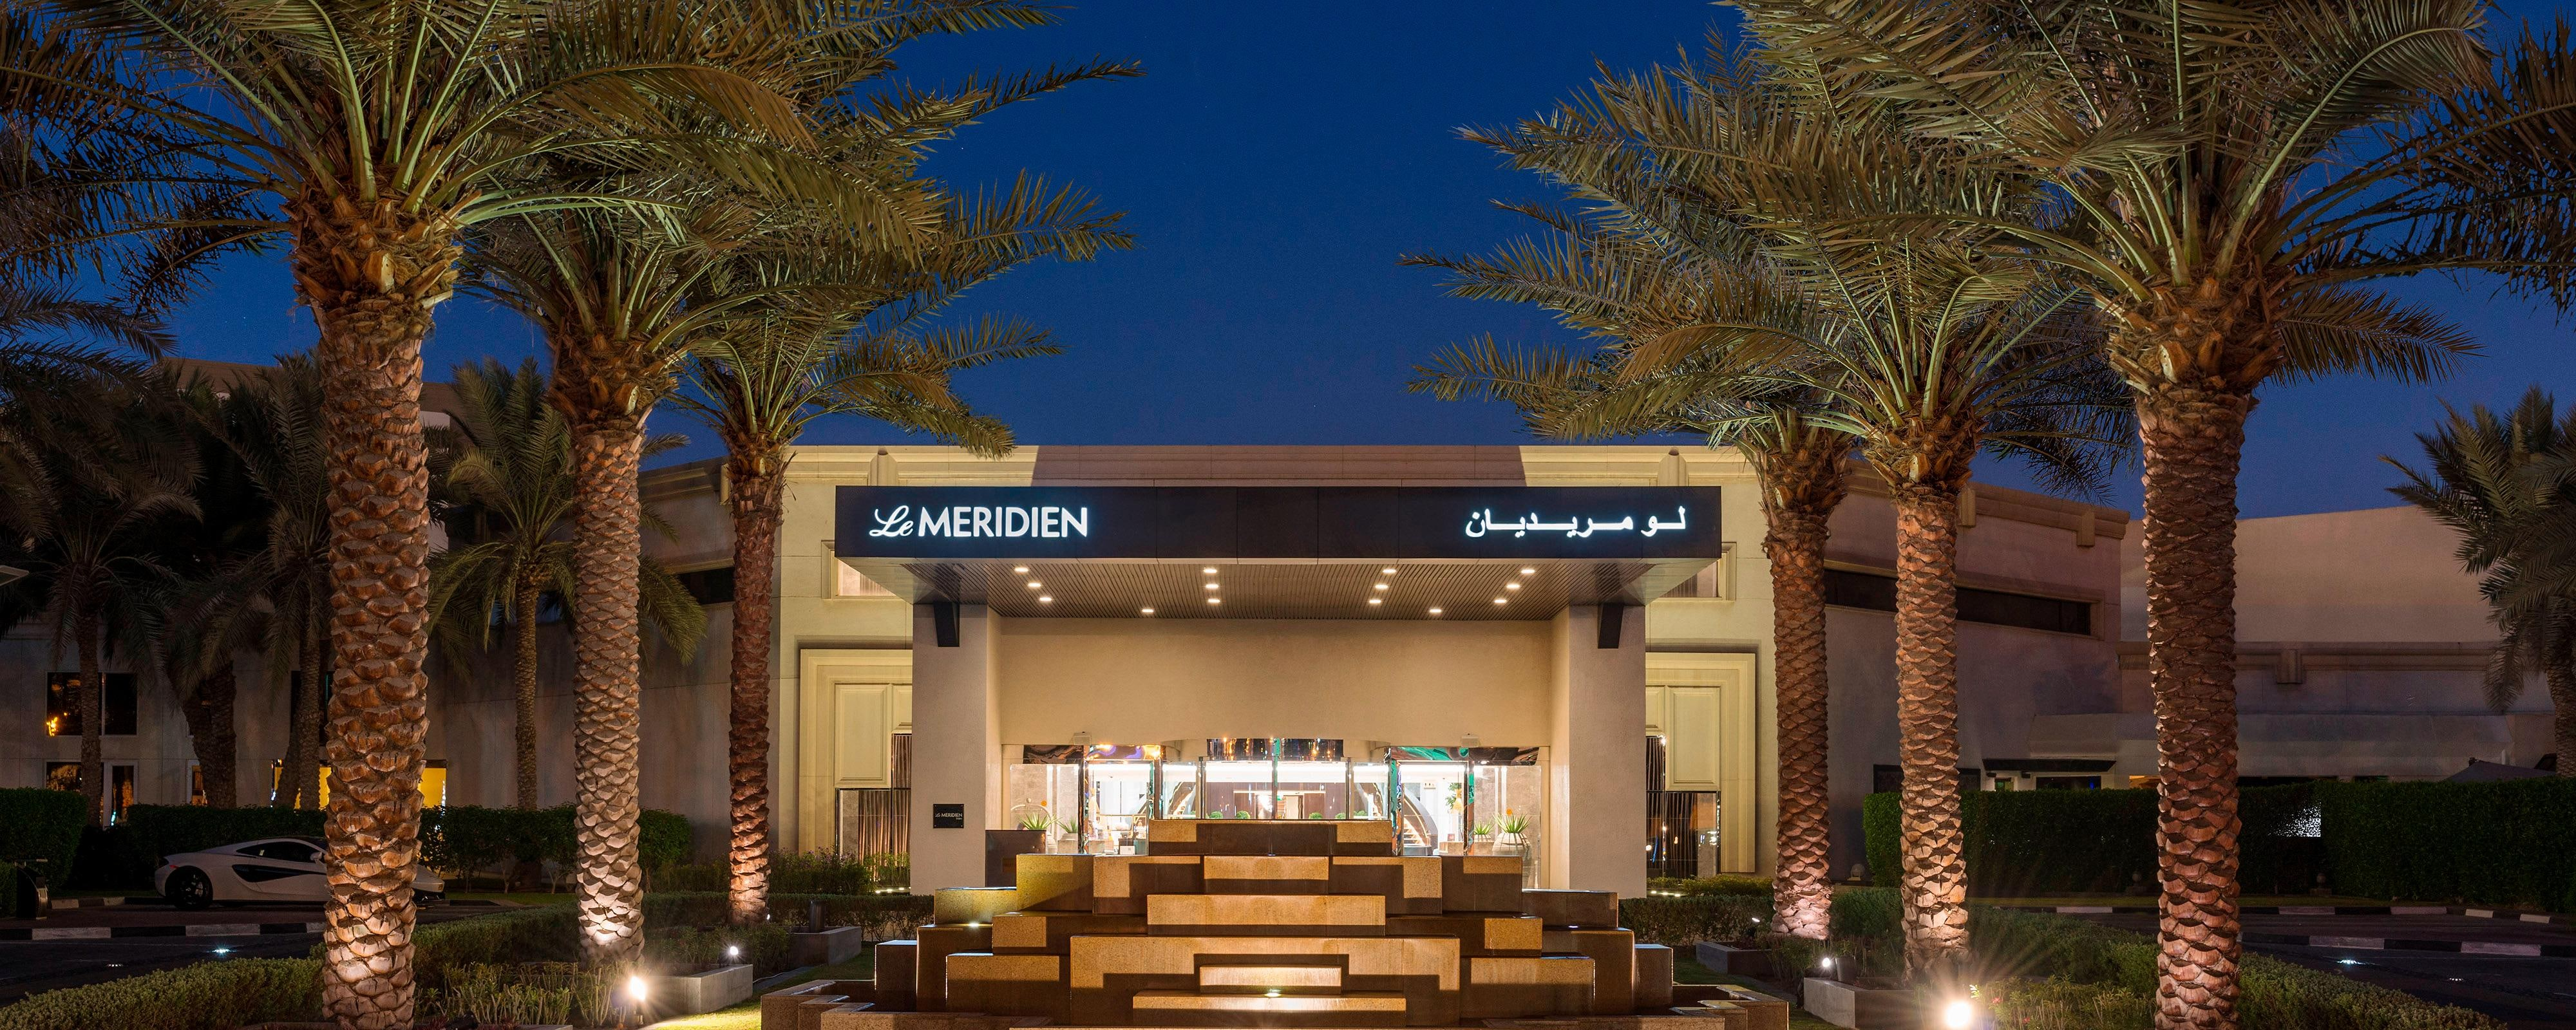 le meridien airport dubai location map 5 Star Dubai Airport Hotel Le Meridien Dubai Hotel Conference le meridien airport dubai location map